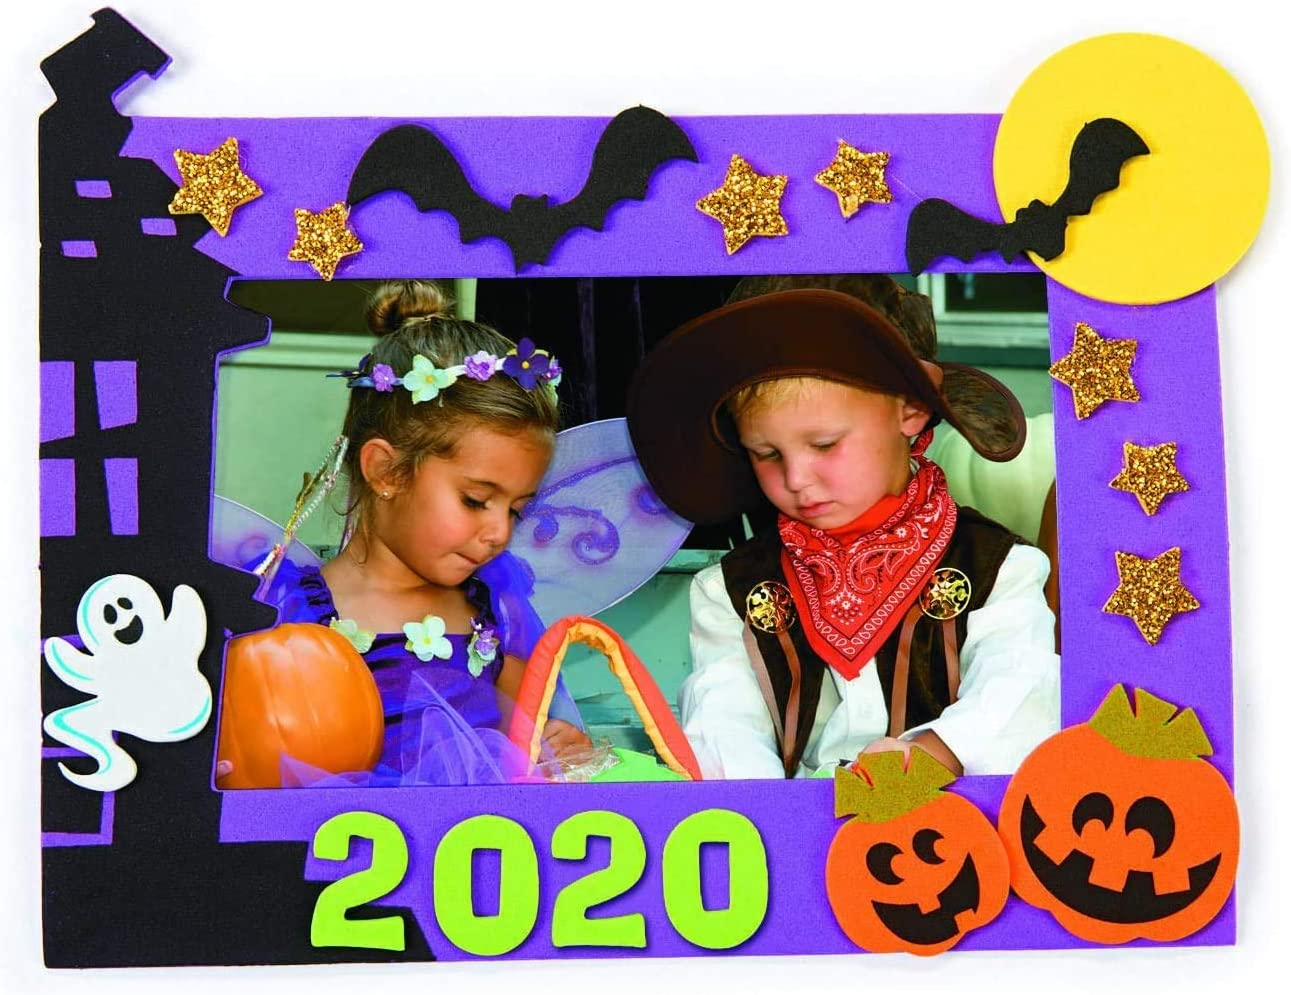 Classroom Arts /& Crafts with Stickers 4Es Novelty Halloween Crafts for Kids for School Home Group Activities Self Adhesive Foam Picture Frame Craft Kit 2020 Dated Makes 12 Party Supplies